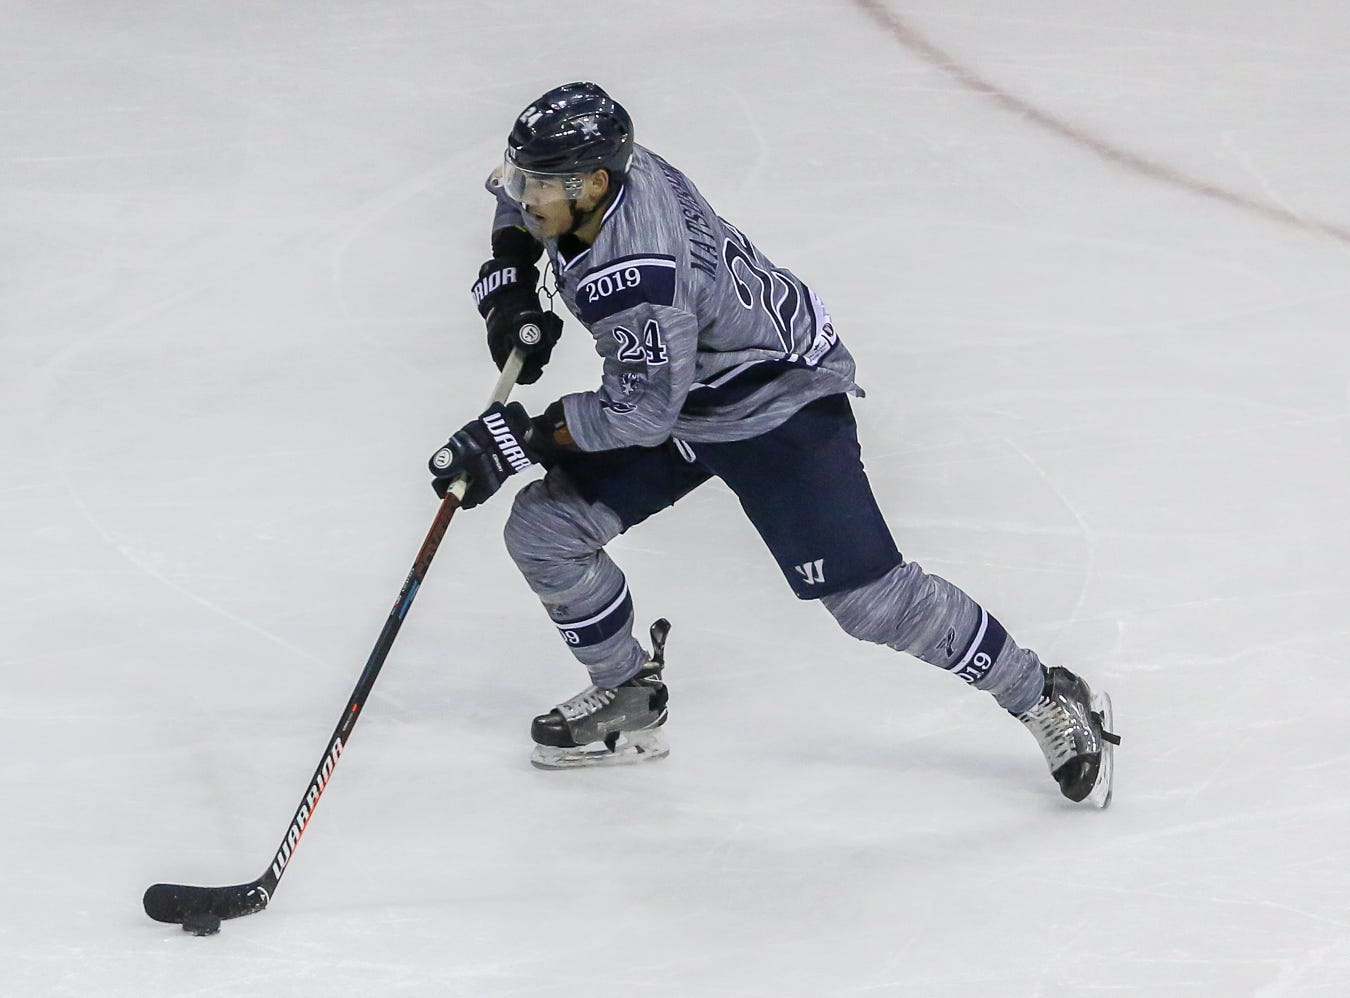 Pensacola's Eddie Matsushima (24) moves the puck up the ice against Macon during the last home game of the regular season at the Pensacola Bay Center on Saturday, March 23, 2019. With over 4,300 people in attendance for Pensacola's 3-1 victory, the Ice Flyers mark six straight years of over 100,000 people at their home games each season. The team has won their last five games in a row and will finish out their last five games on the road before entering the playoffs in a couple of weeks.